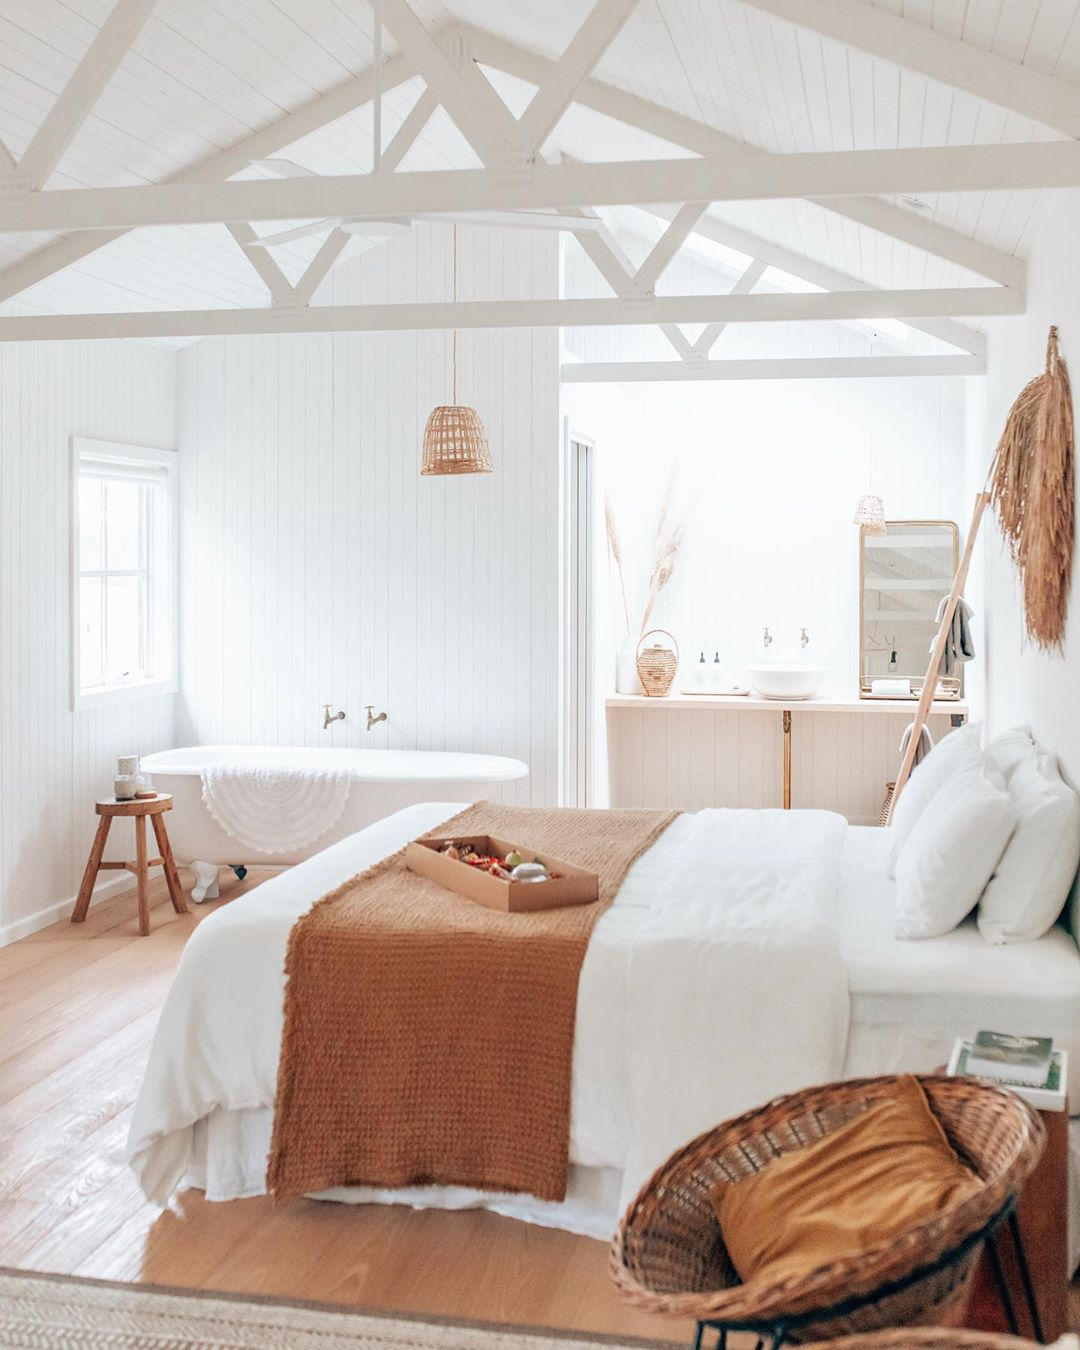 Bright and airy farmhouse bedroom